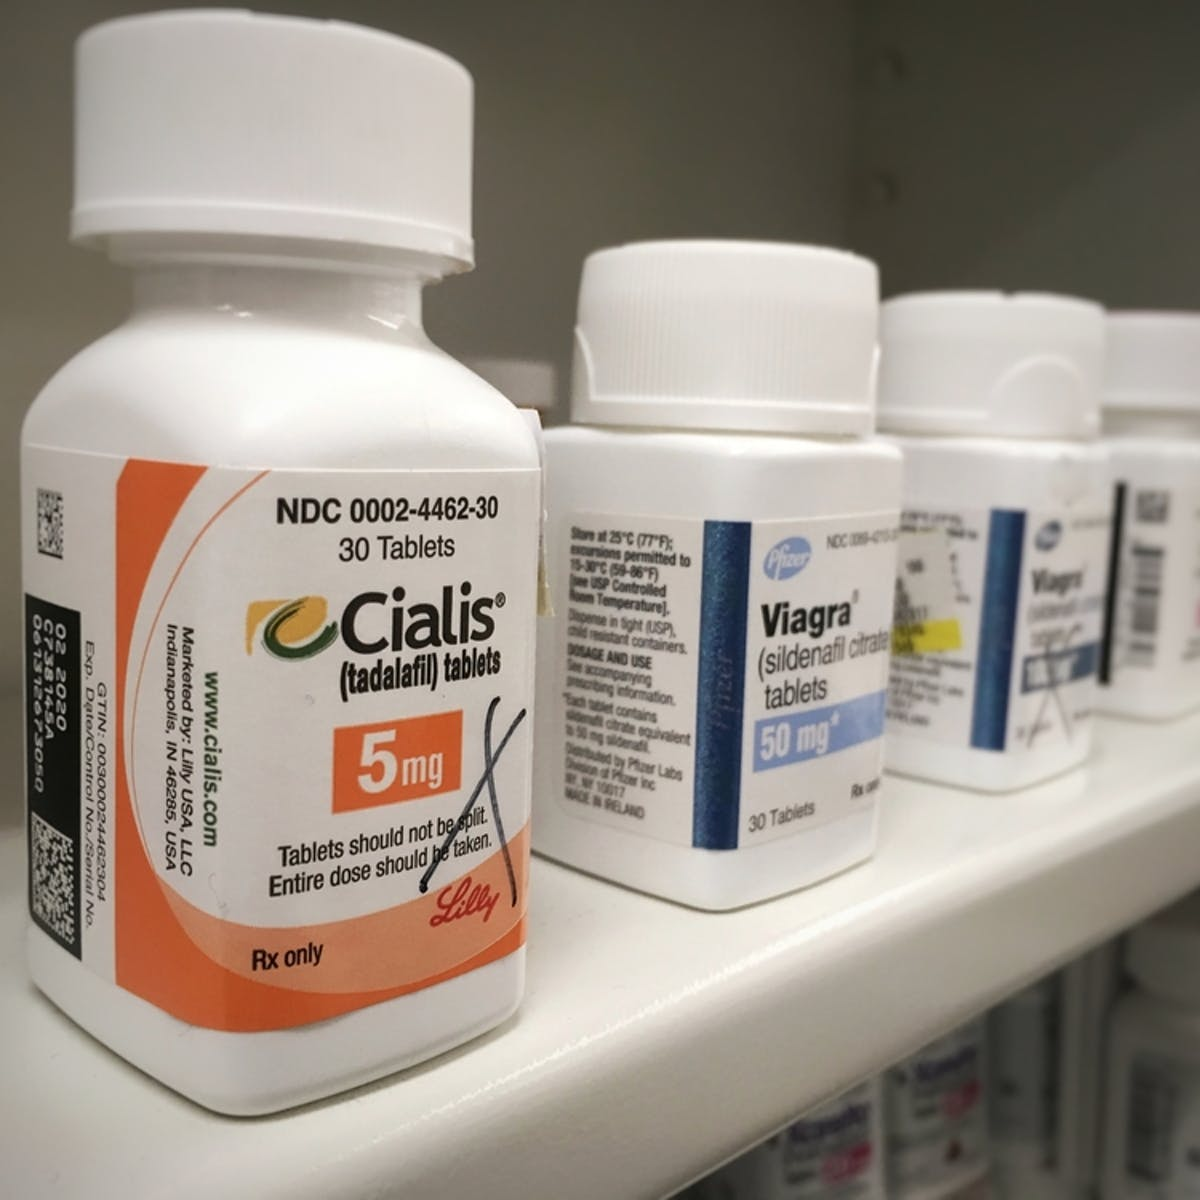 The right time to take Cialis